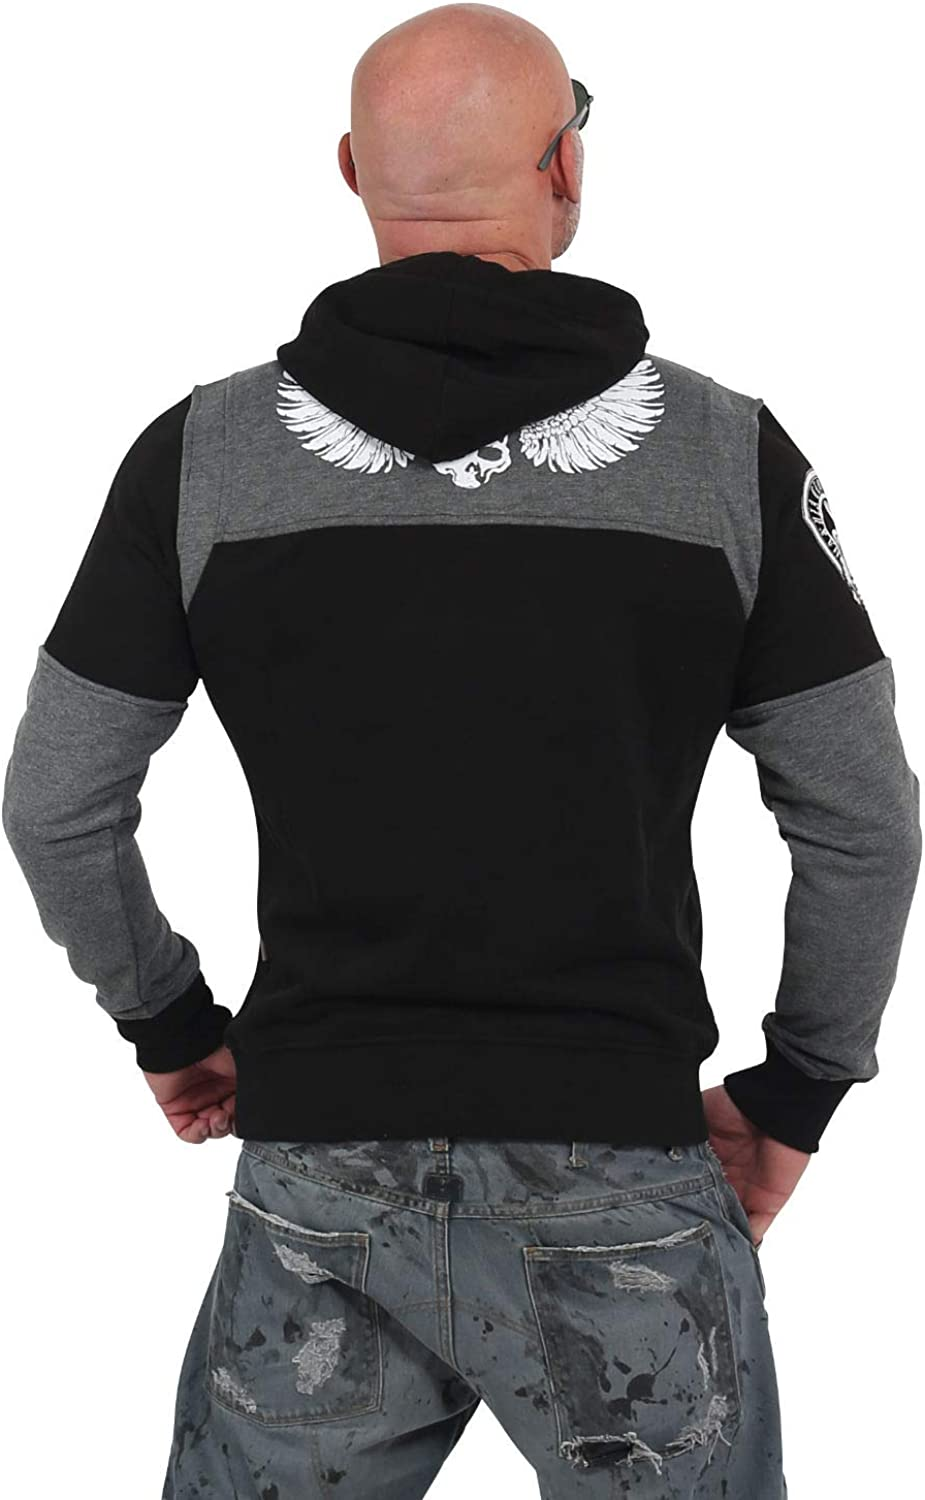 Yakuza Hoody Label Two Face HOB-13002 Black Schwarz